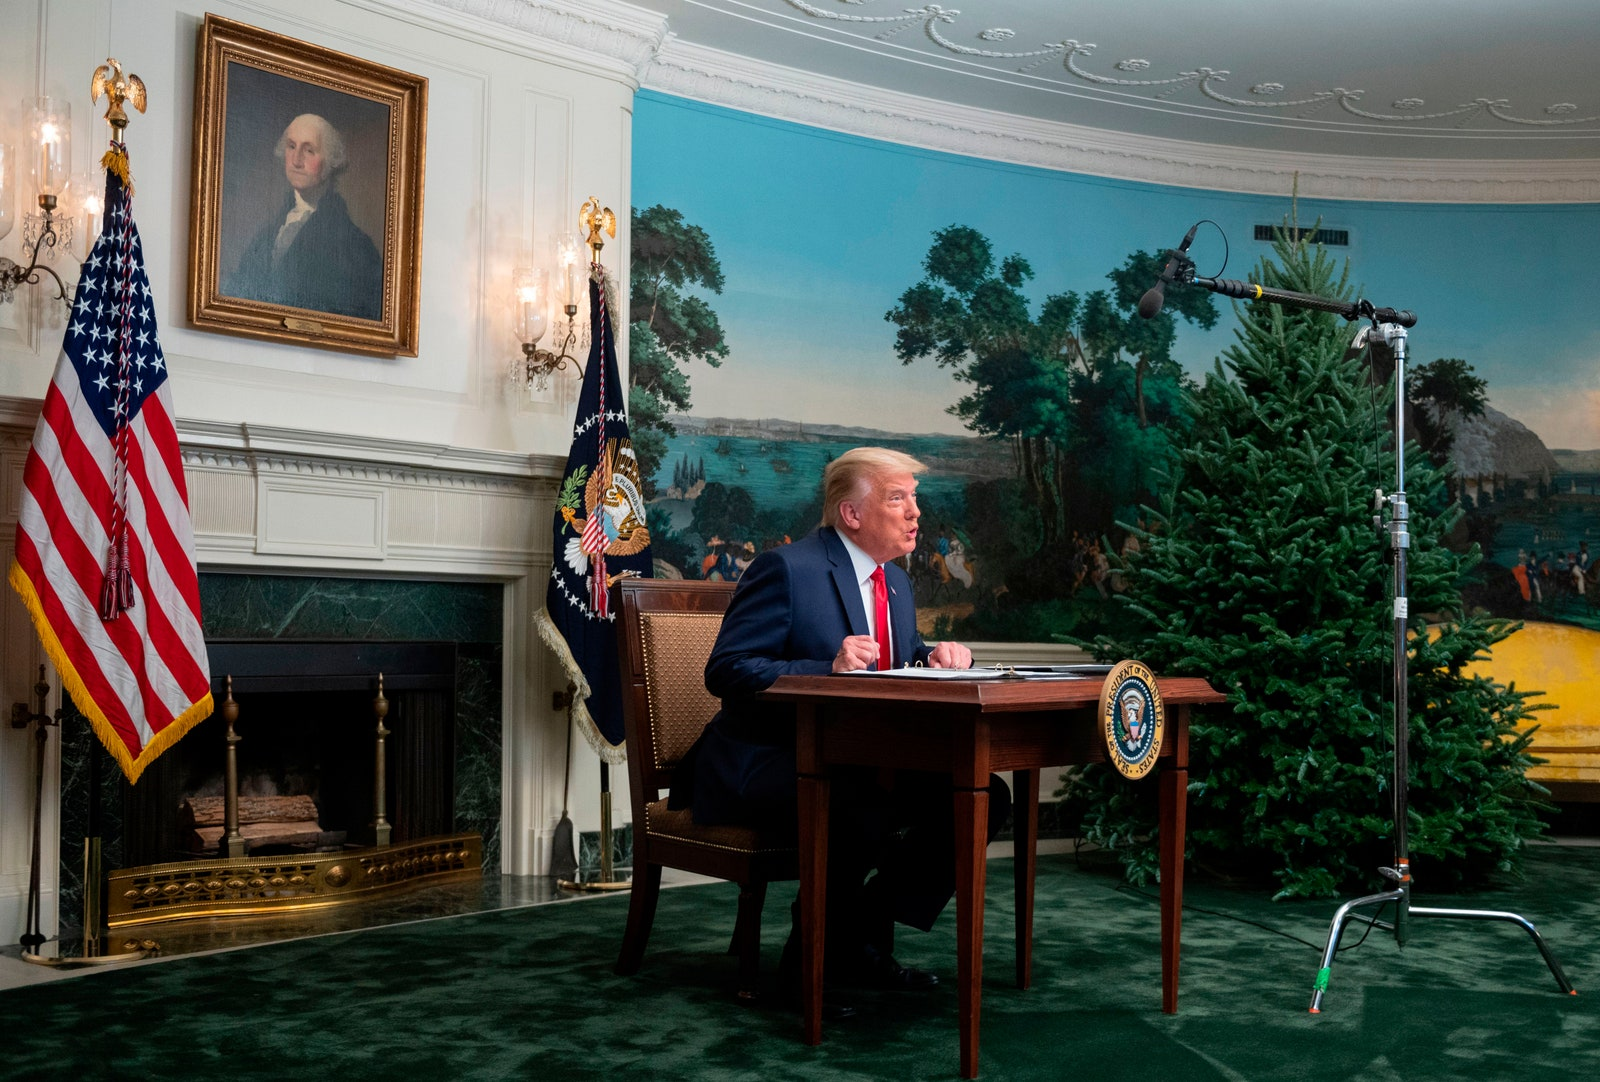 Donald Trump participates in a Thanksgiving teleconference